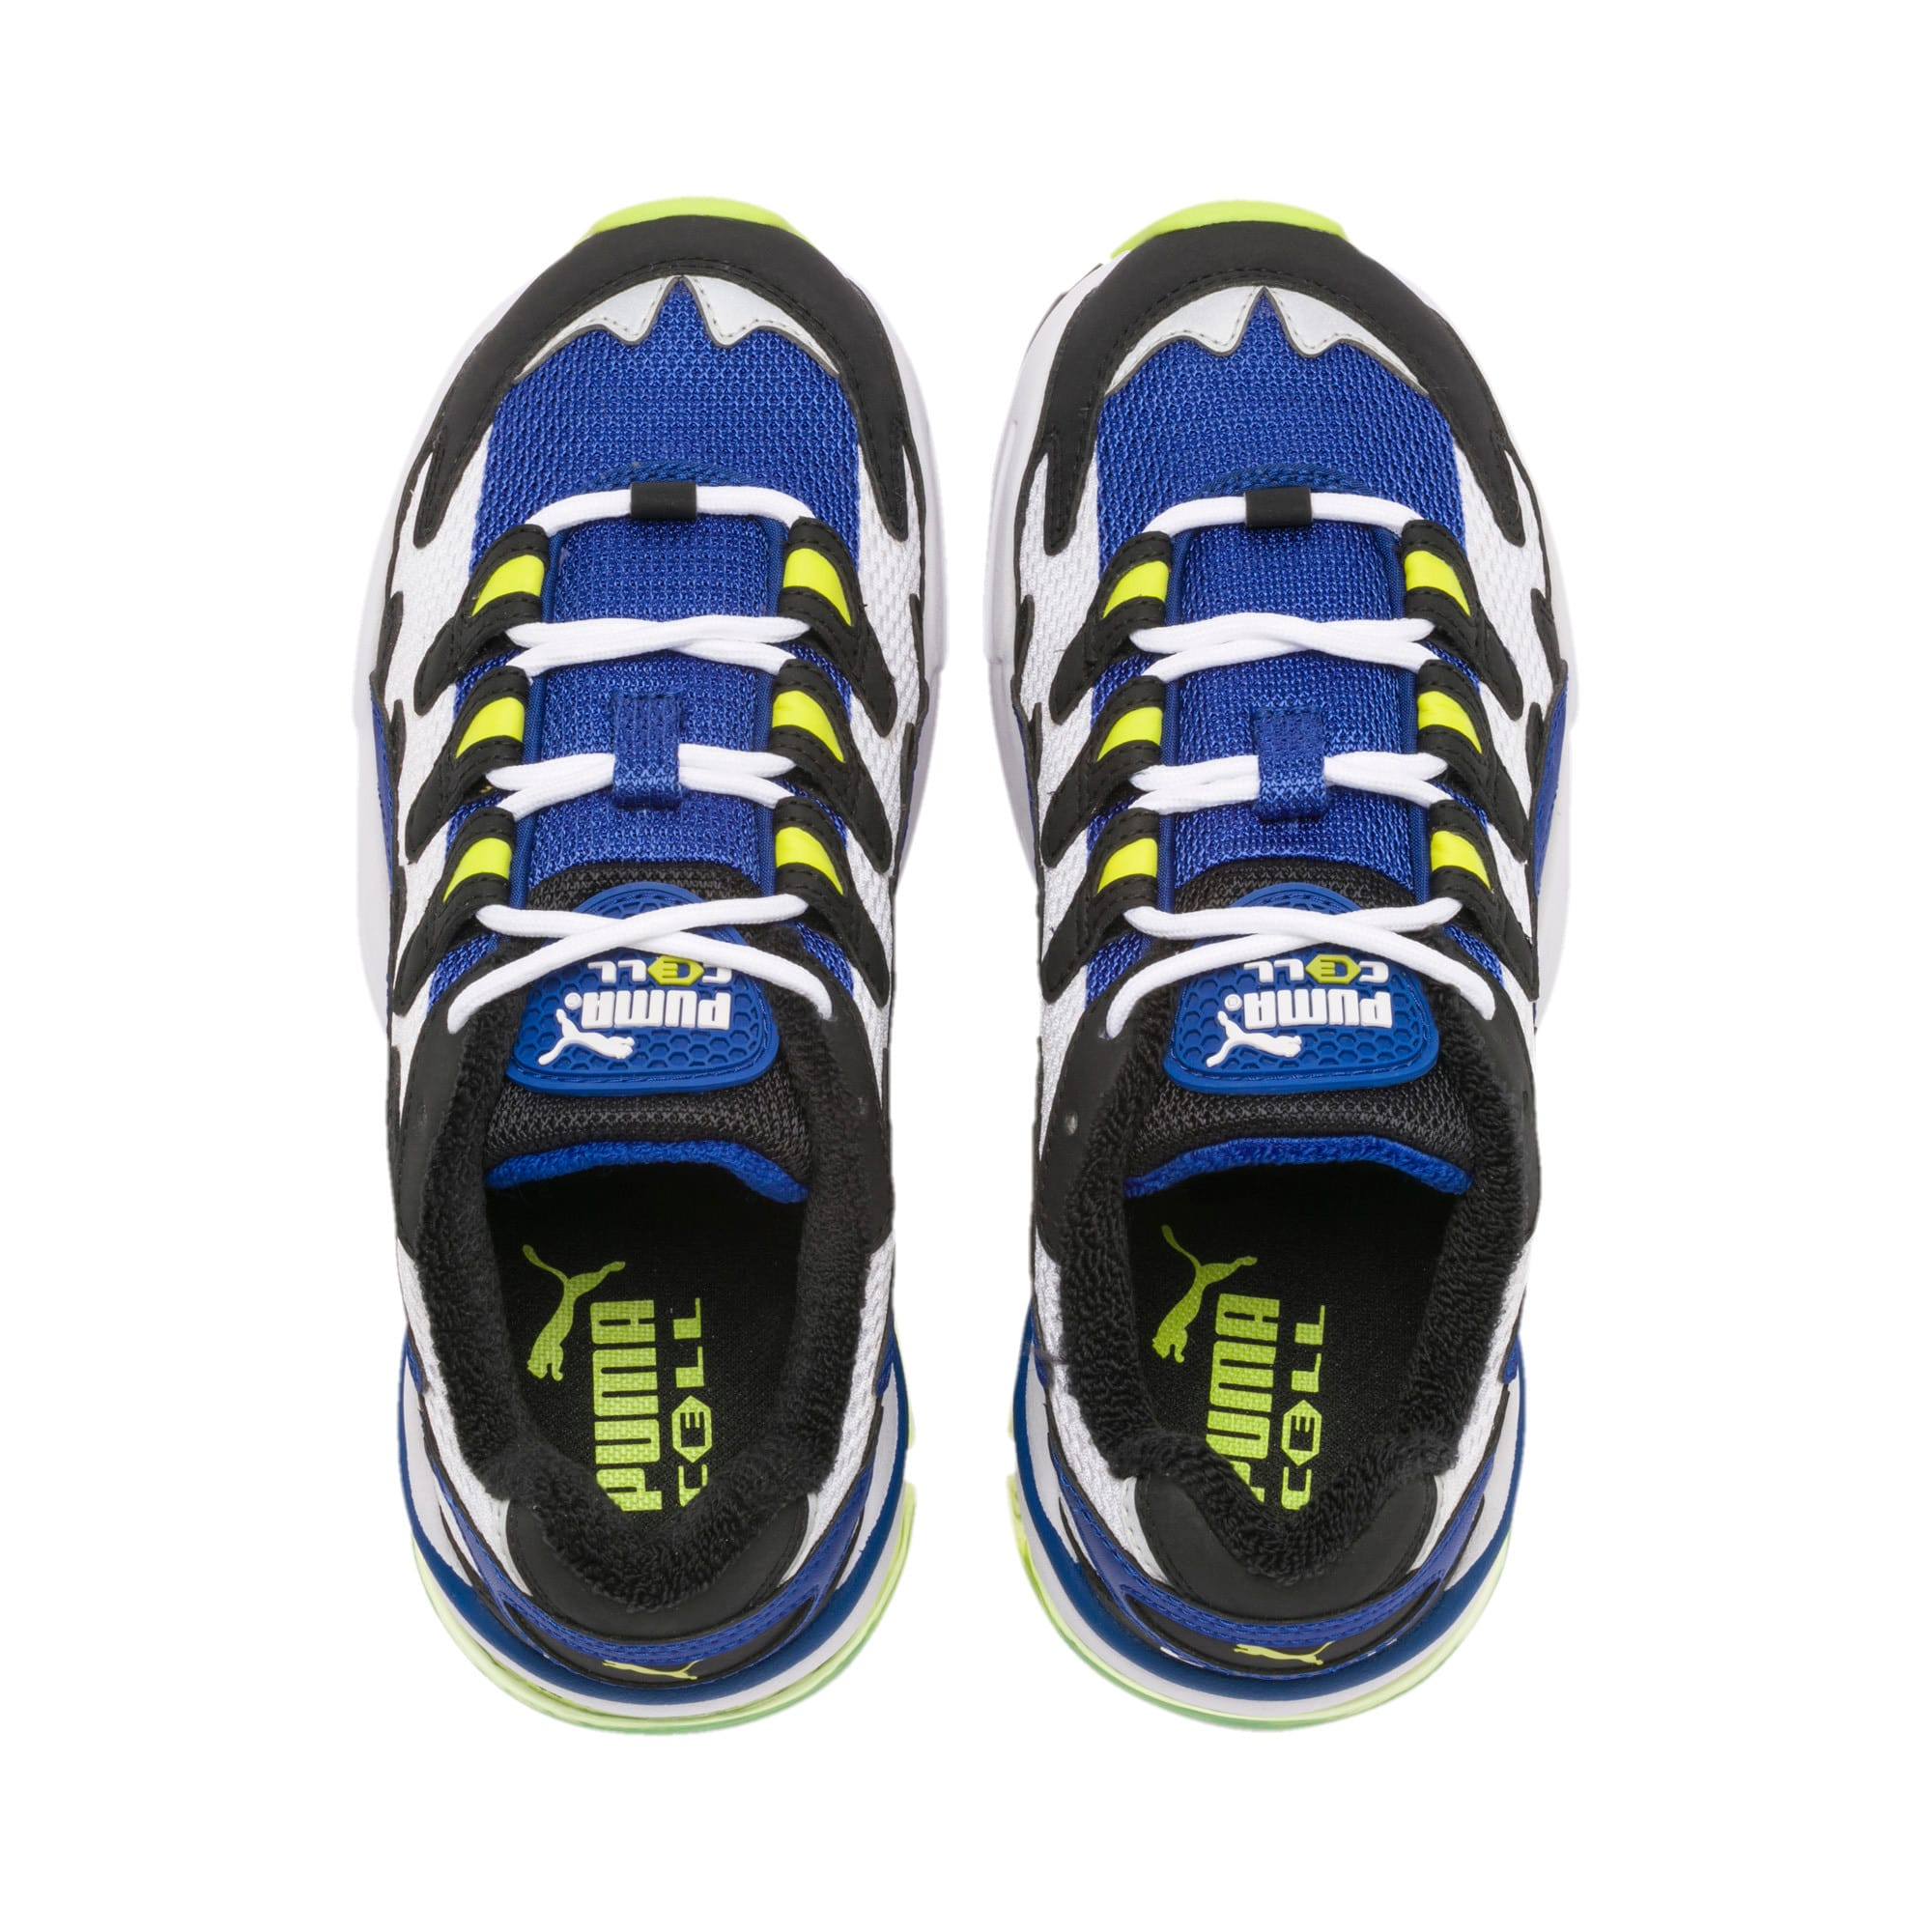 Thumbnail 6 of CELL Alien Kids' Trainers, Puma Black-Surf The Web, medium-IND